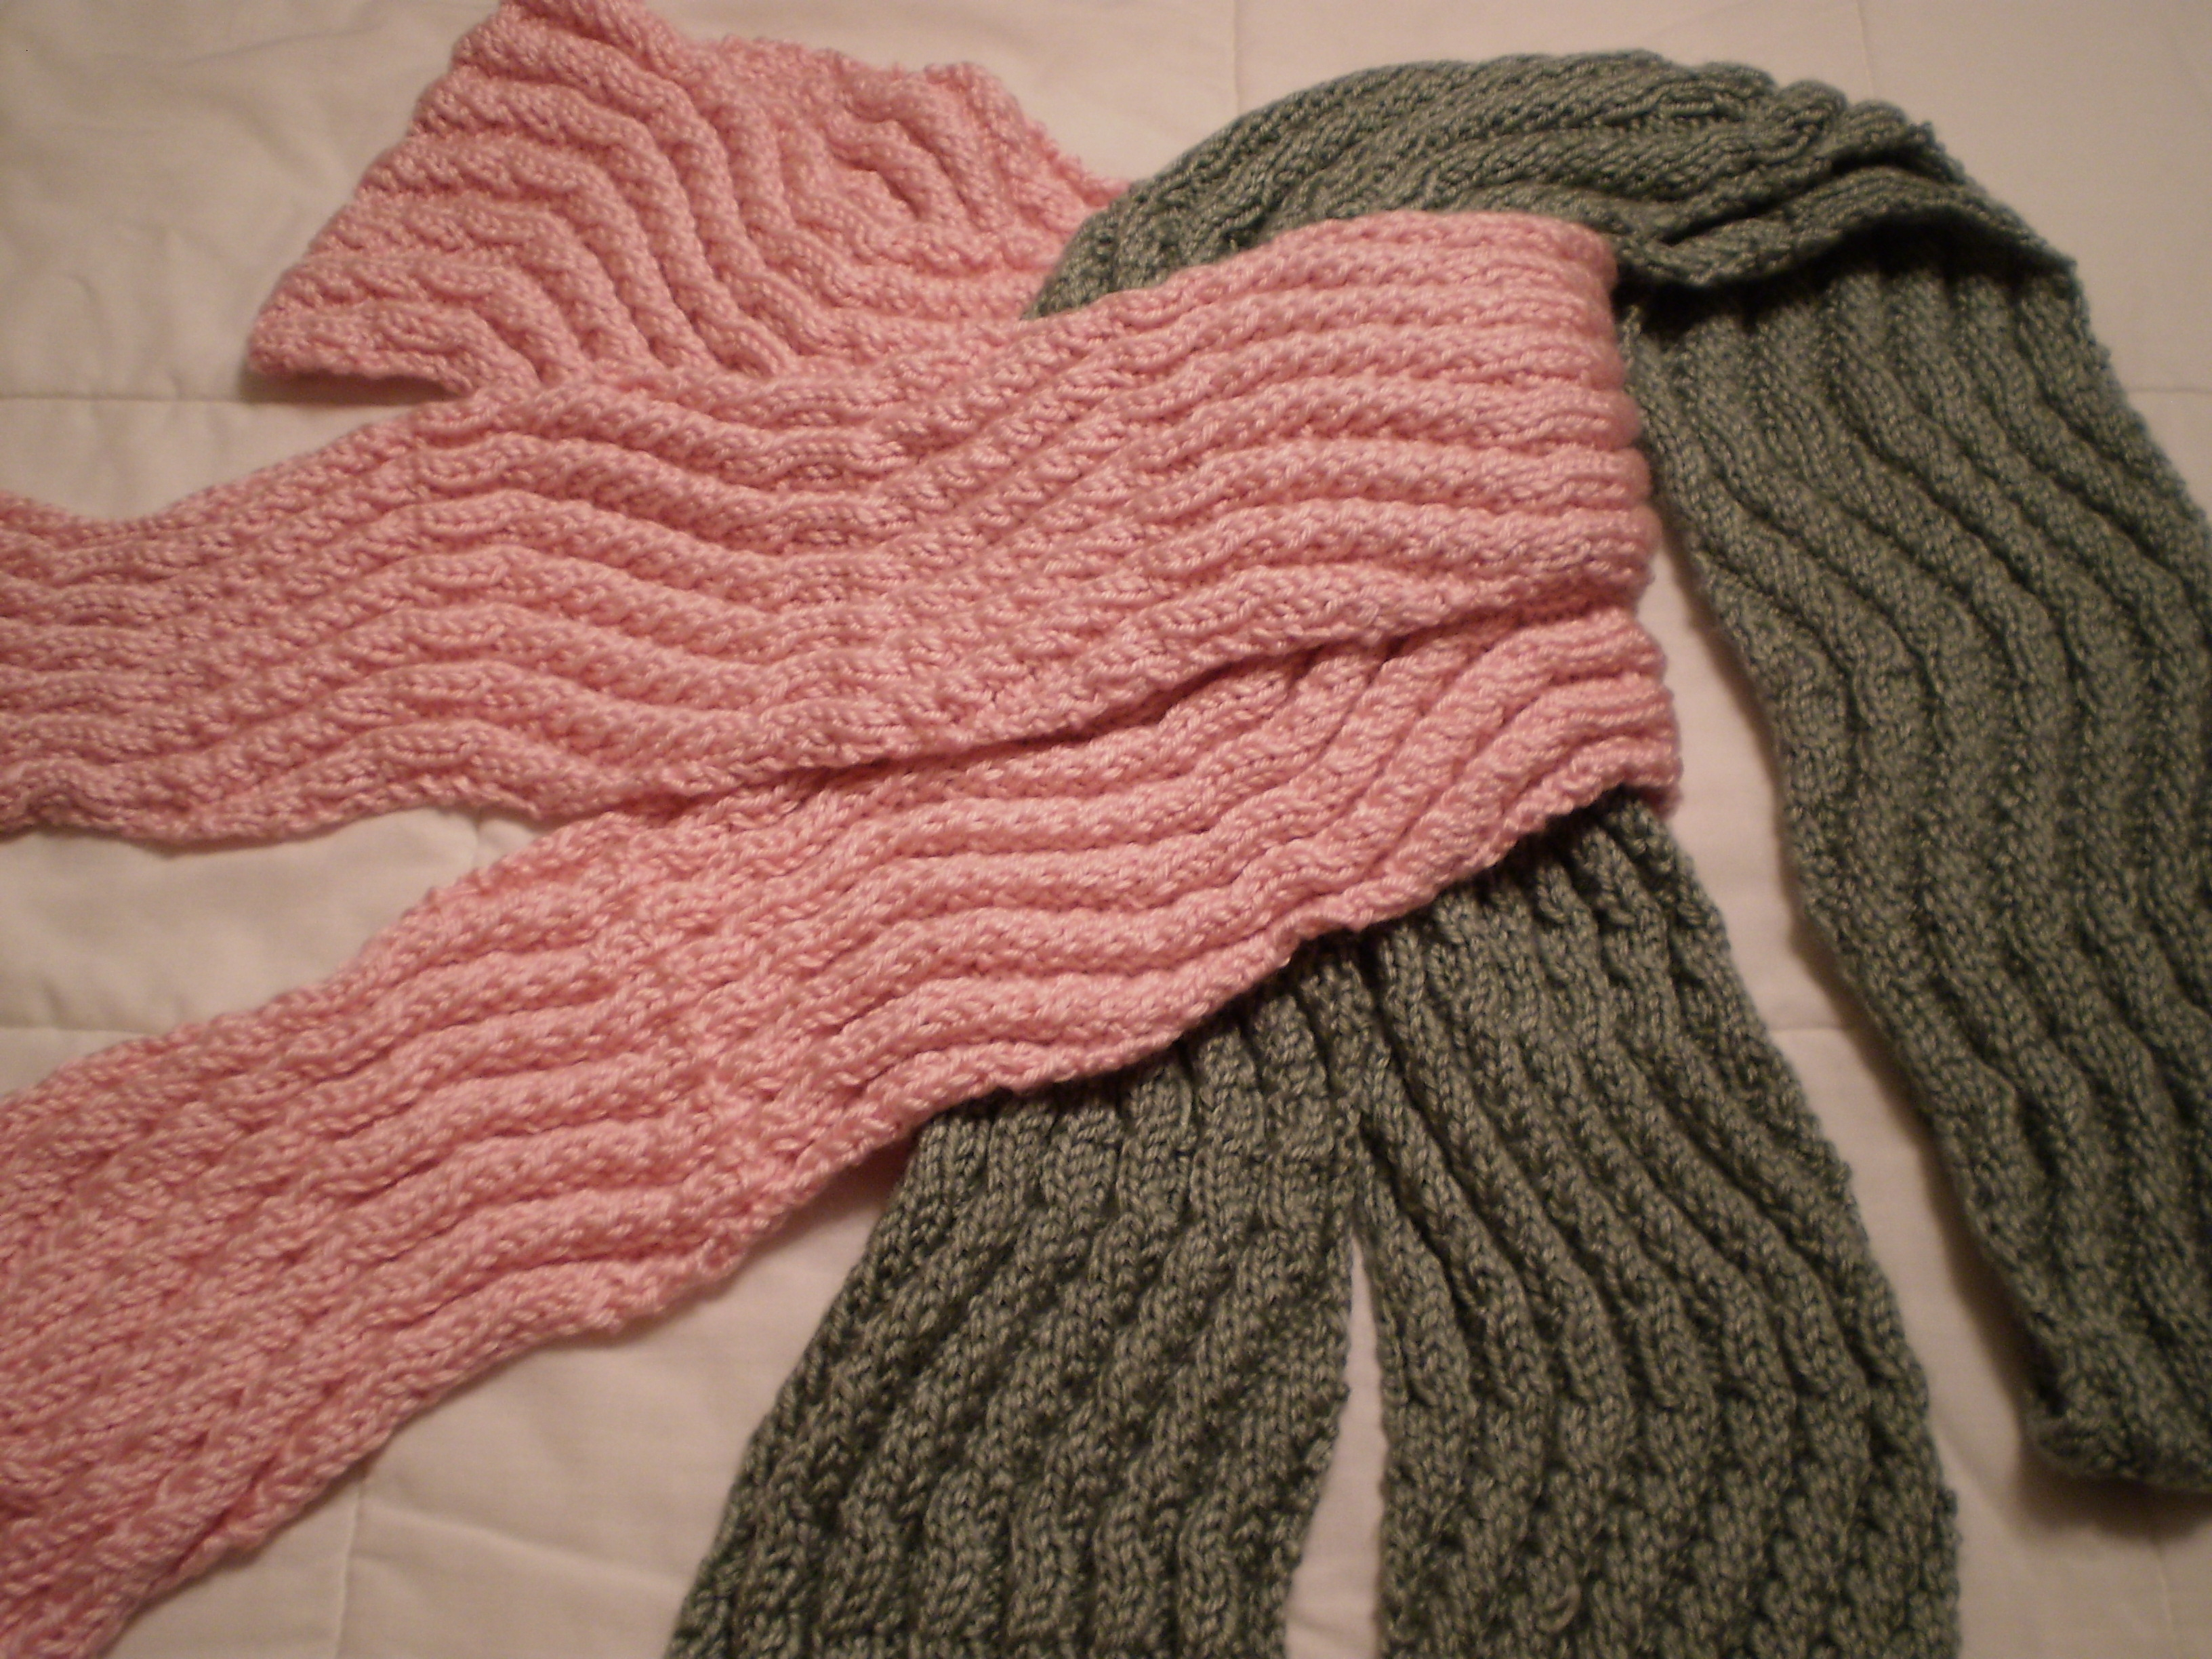 Knitting Patterns Easy Scarf Scarf Knitting Patterns Easy Crochet And Knit